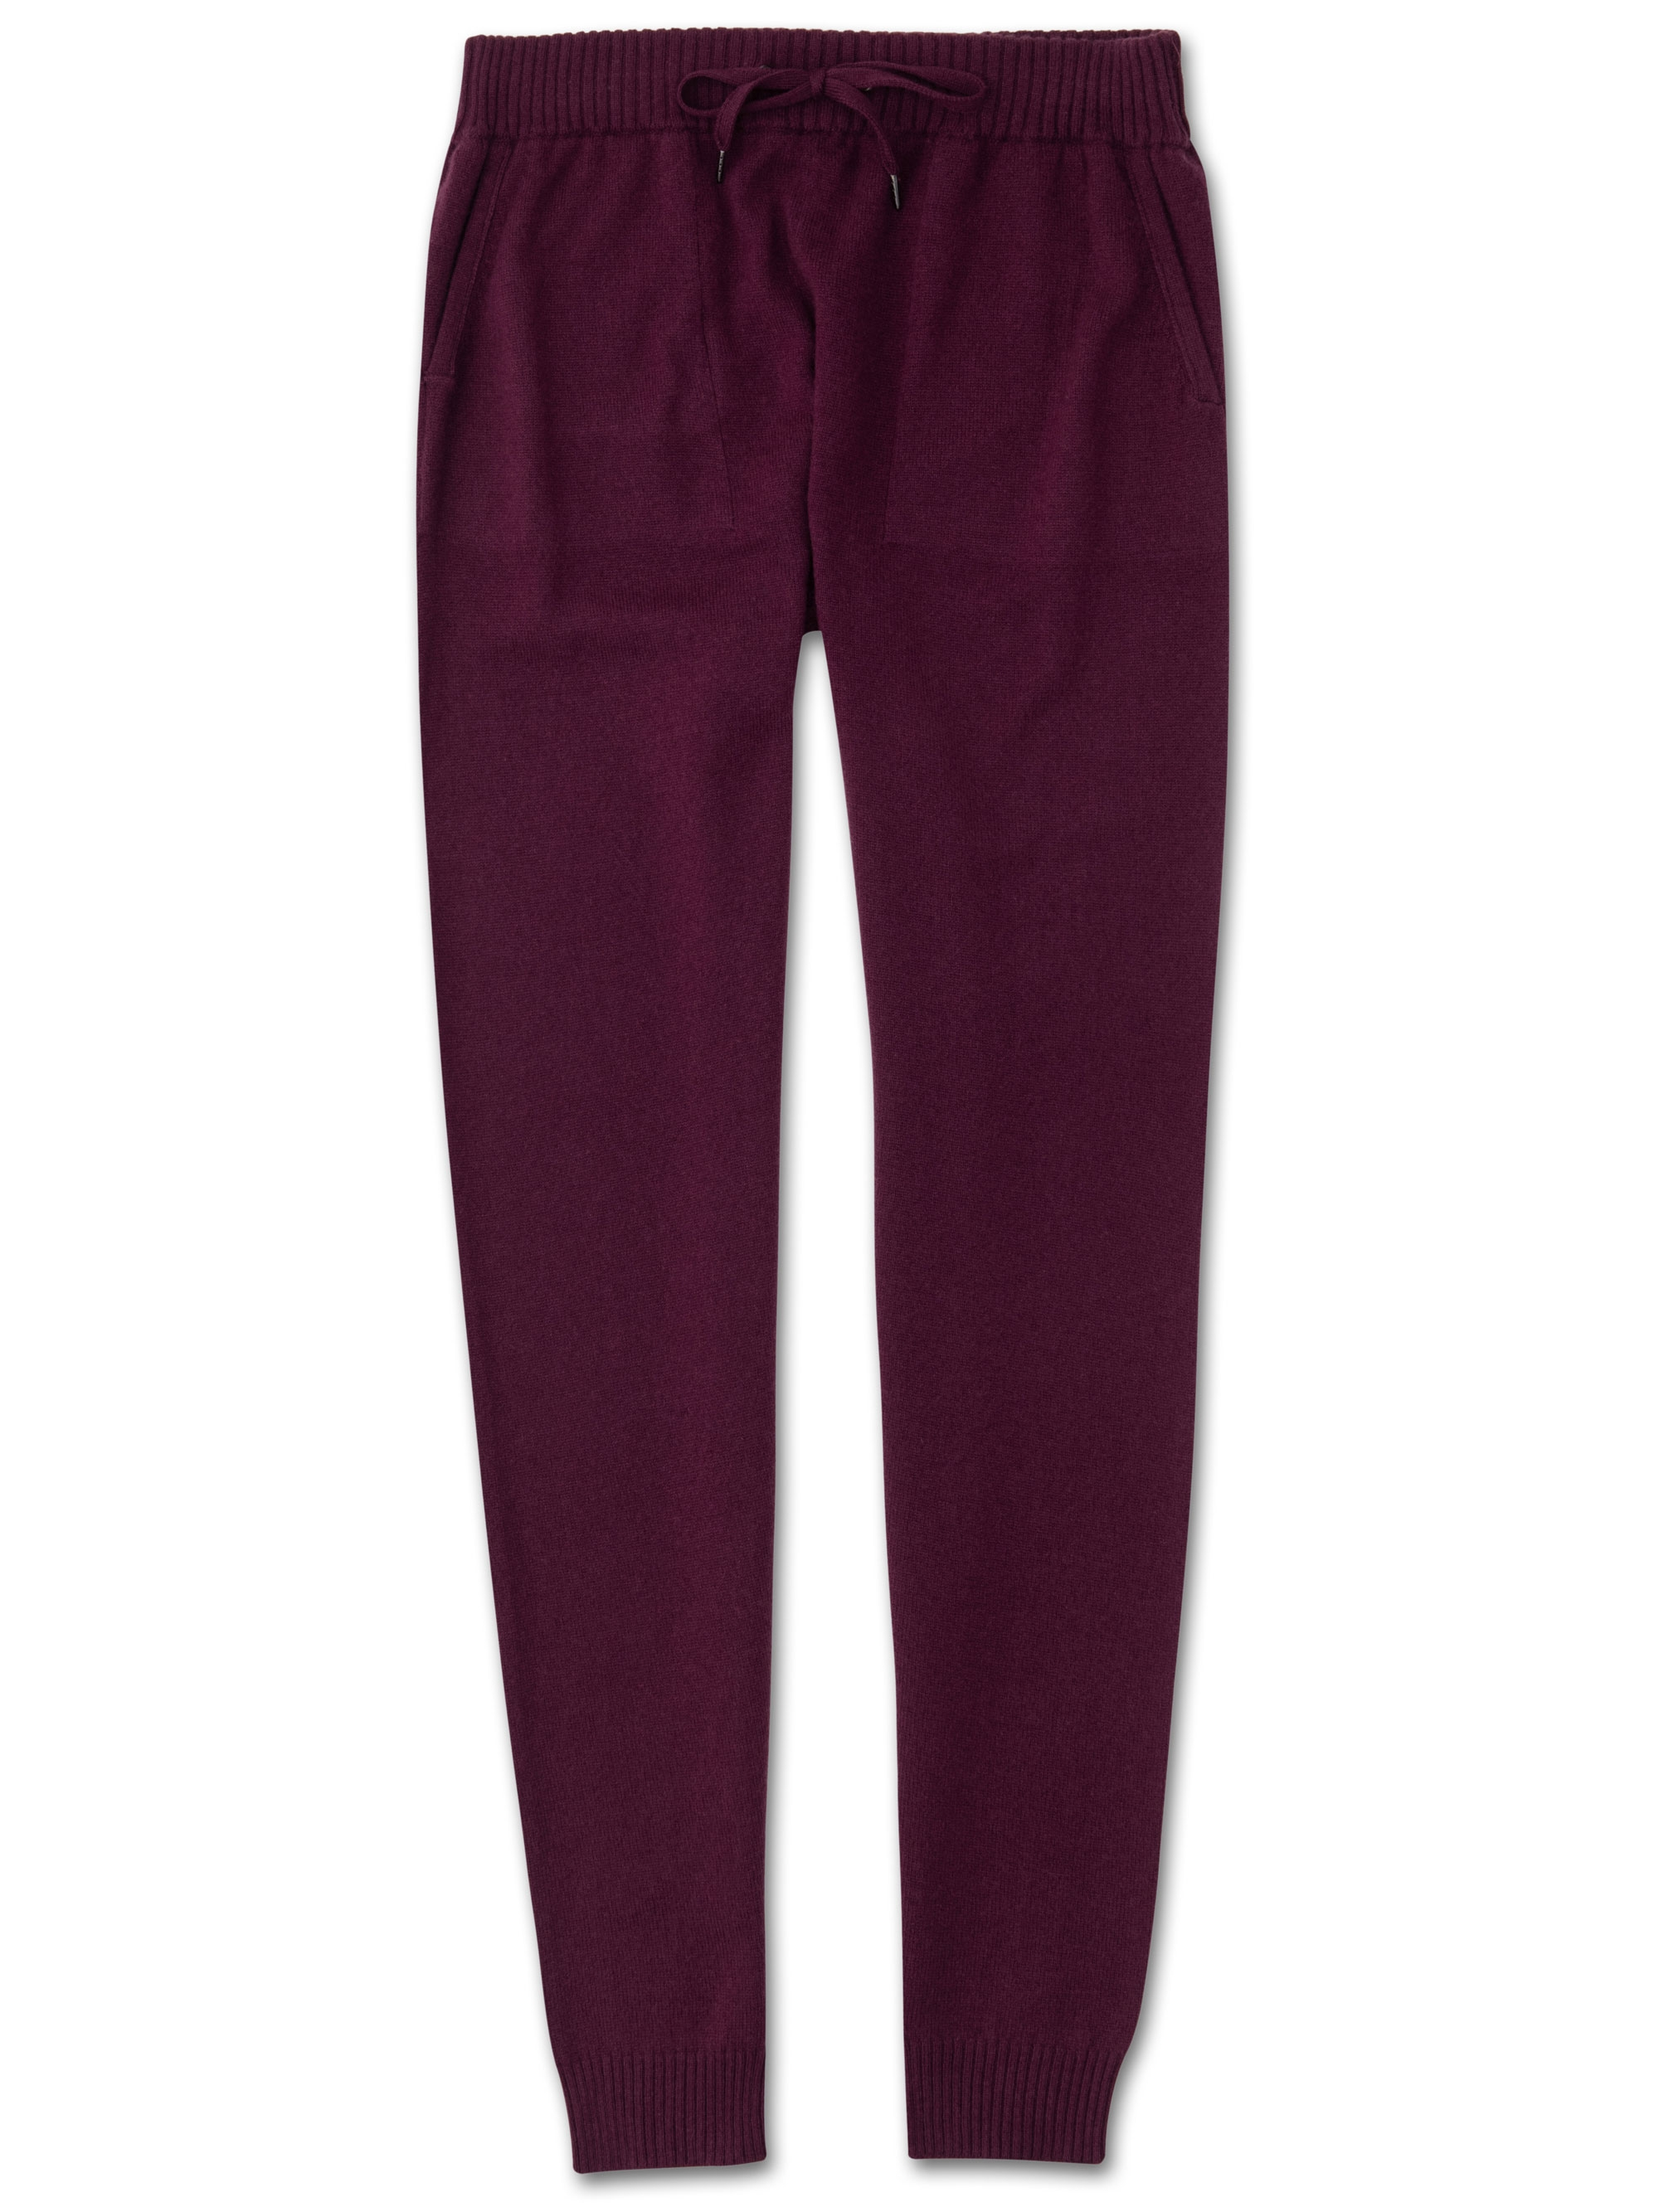 Derek Rose Women's Cashmere Track Pants Finley Pure Cashmere Berry